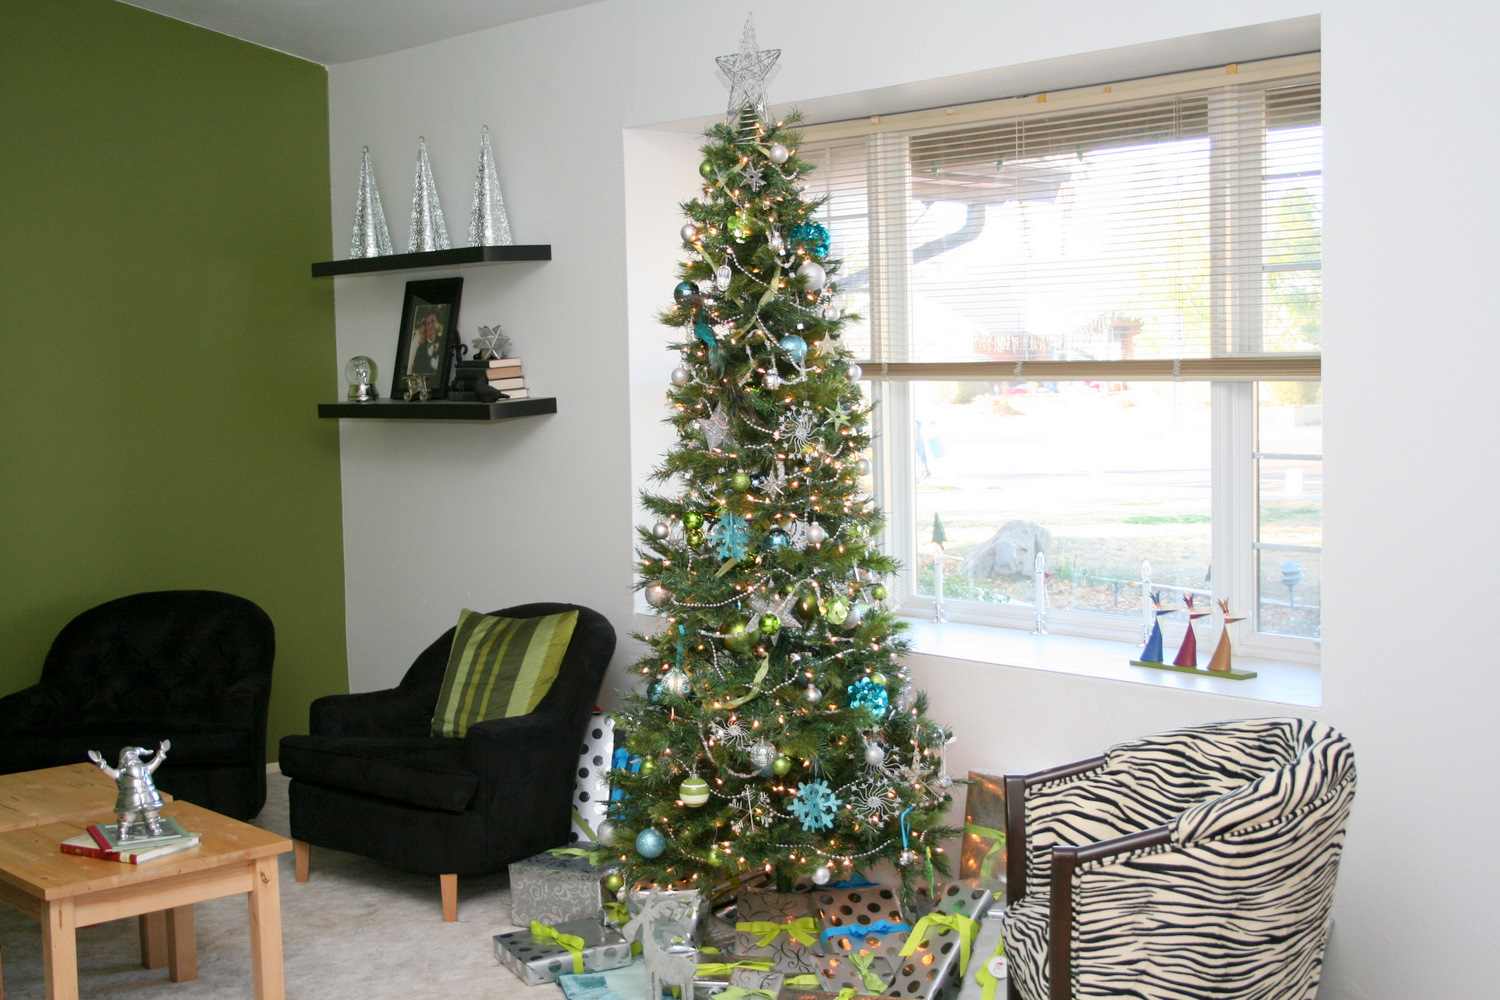 Decorating tips for a modern merry christmas for Modern christmas decorations online